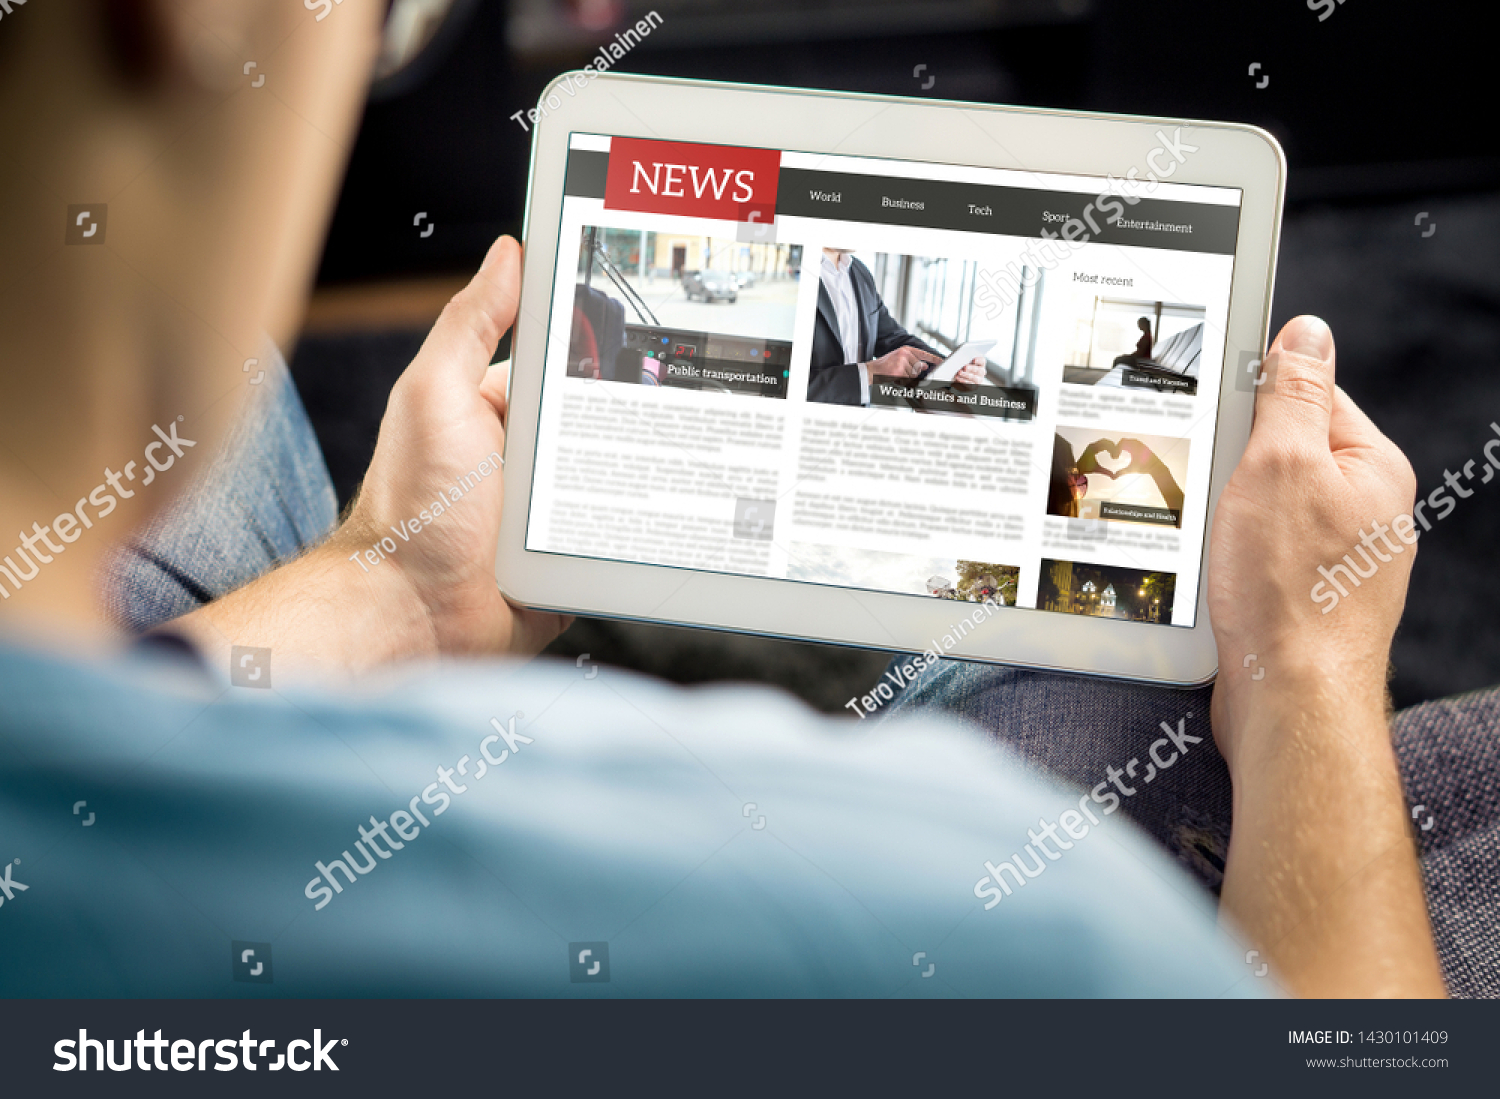 Online news article on tablet screen. Electronic newspaper or magazine. Latest daily press and media. Mockup of digital portal and website. Happy person using web service in the morning. Reading text. #1430101409